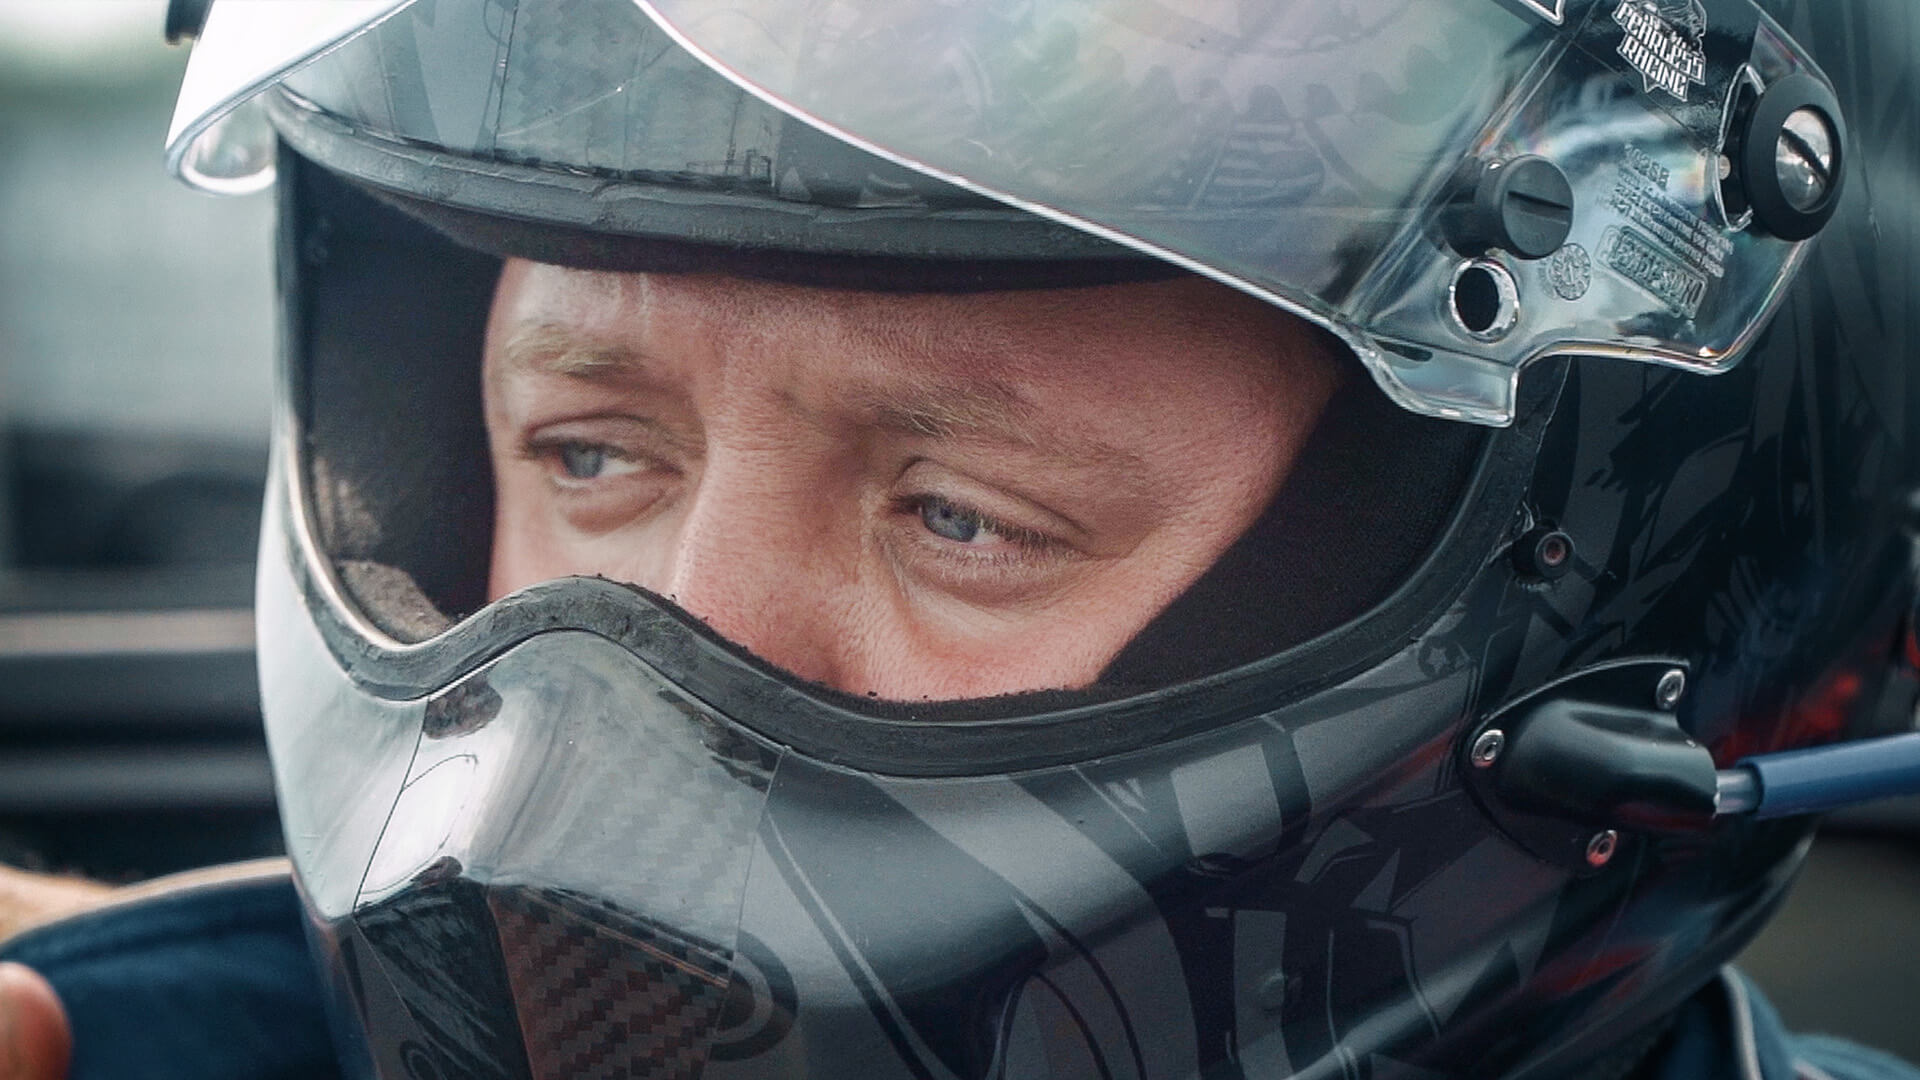 Josh Hart is all focus prior to qualifying at the 2019 NHRA U.S. Nationals.